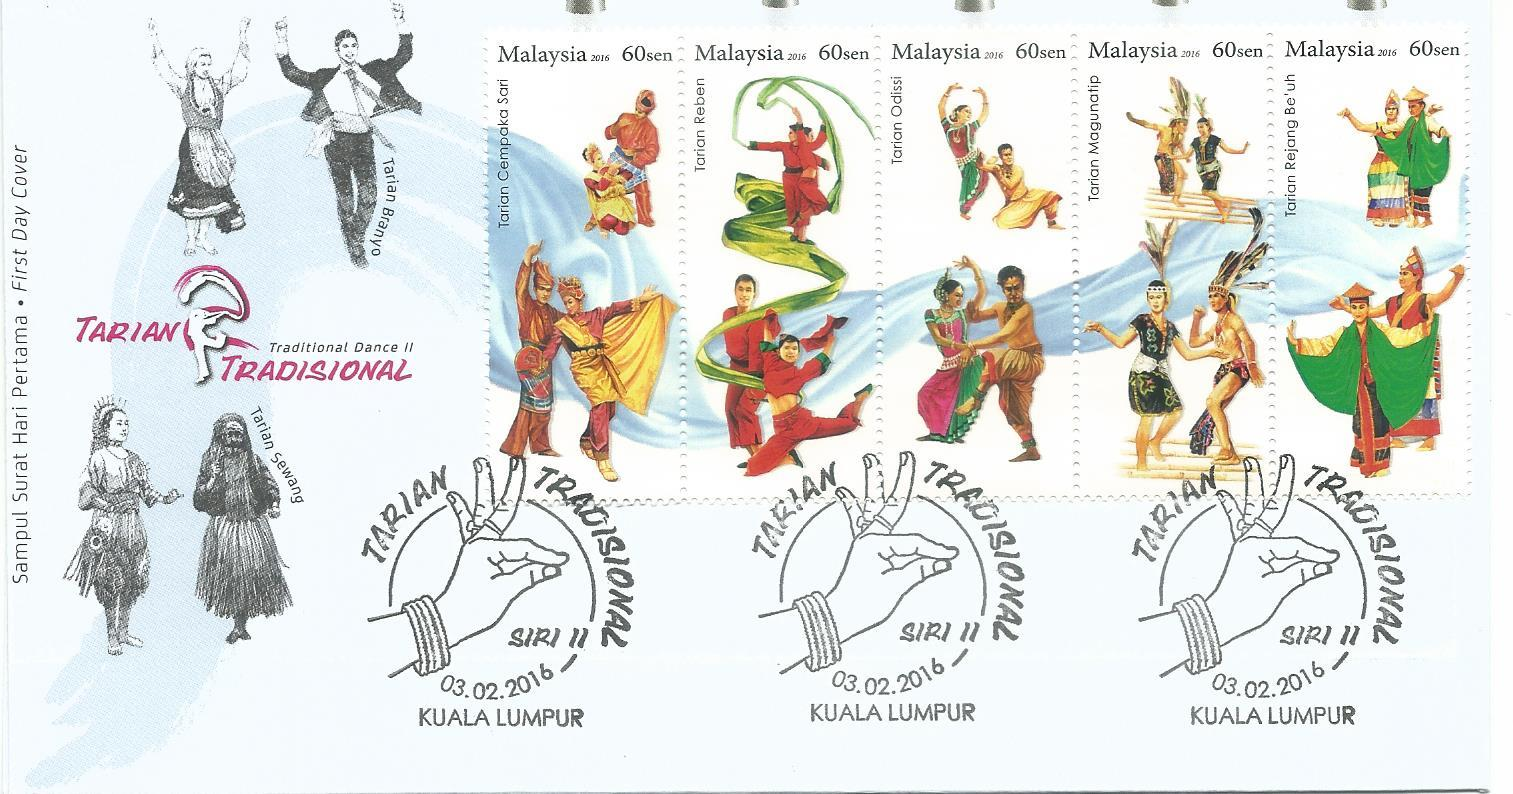 MFDC-20160203 M'SIA 2016 TRADITIONAL DANCE II FIRST DAY COVER